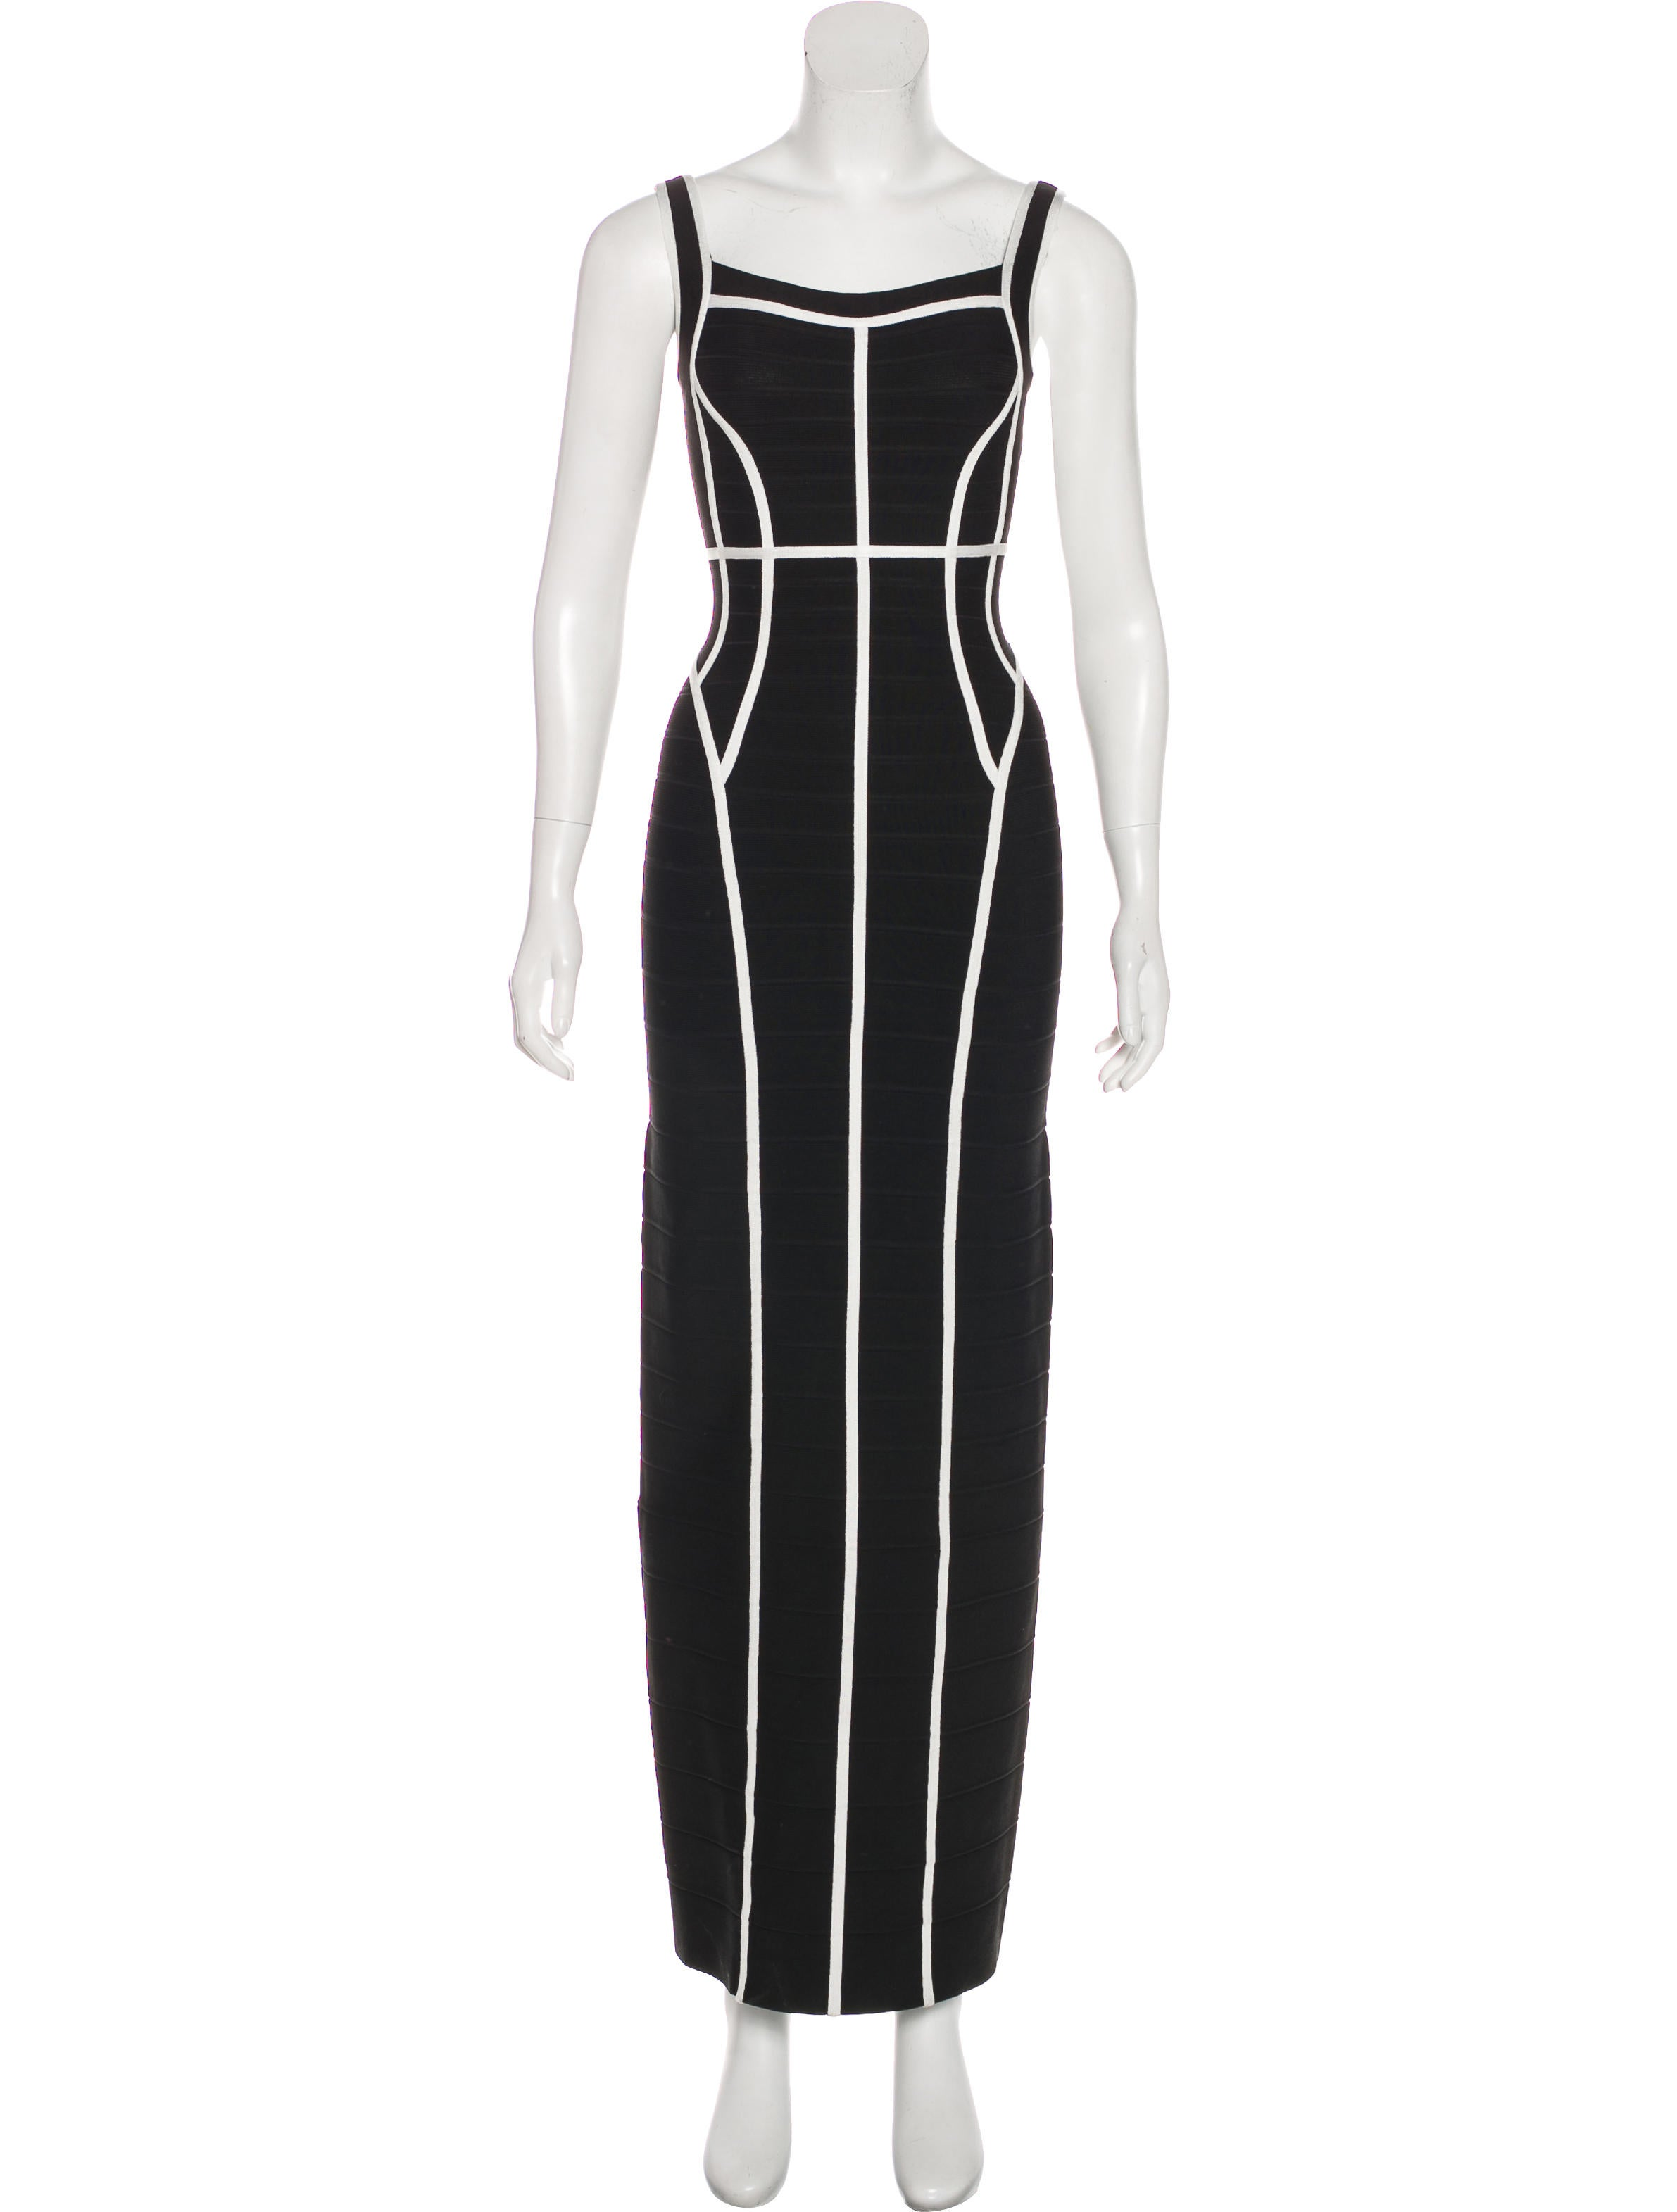 Herve Leger Helena Bandage Gown - Clothing - HEV35978 | The RealReal